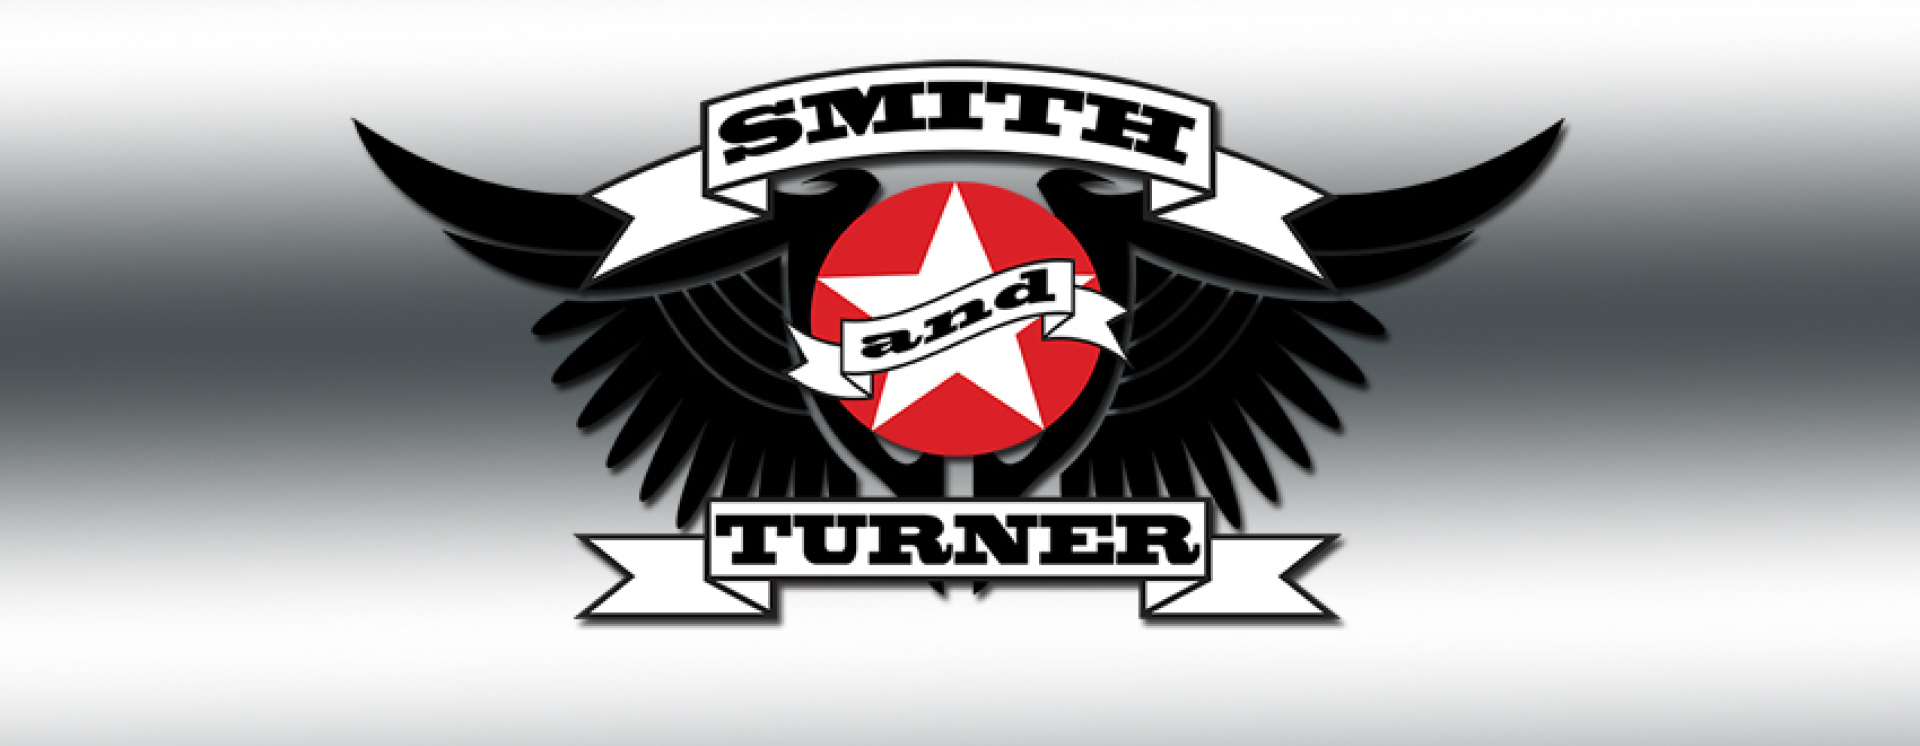 1397618354 smith and turner logo mtl back copy